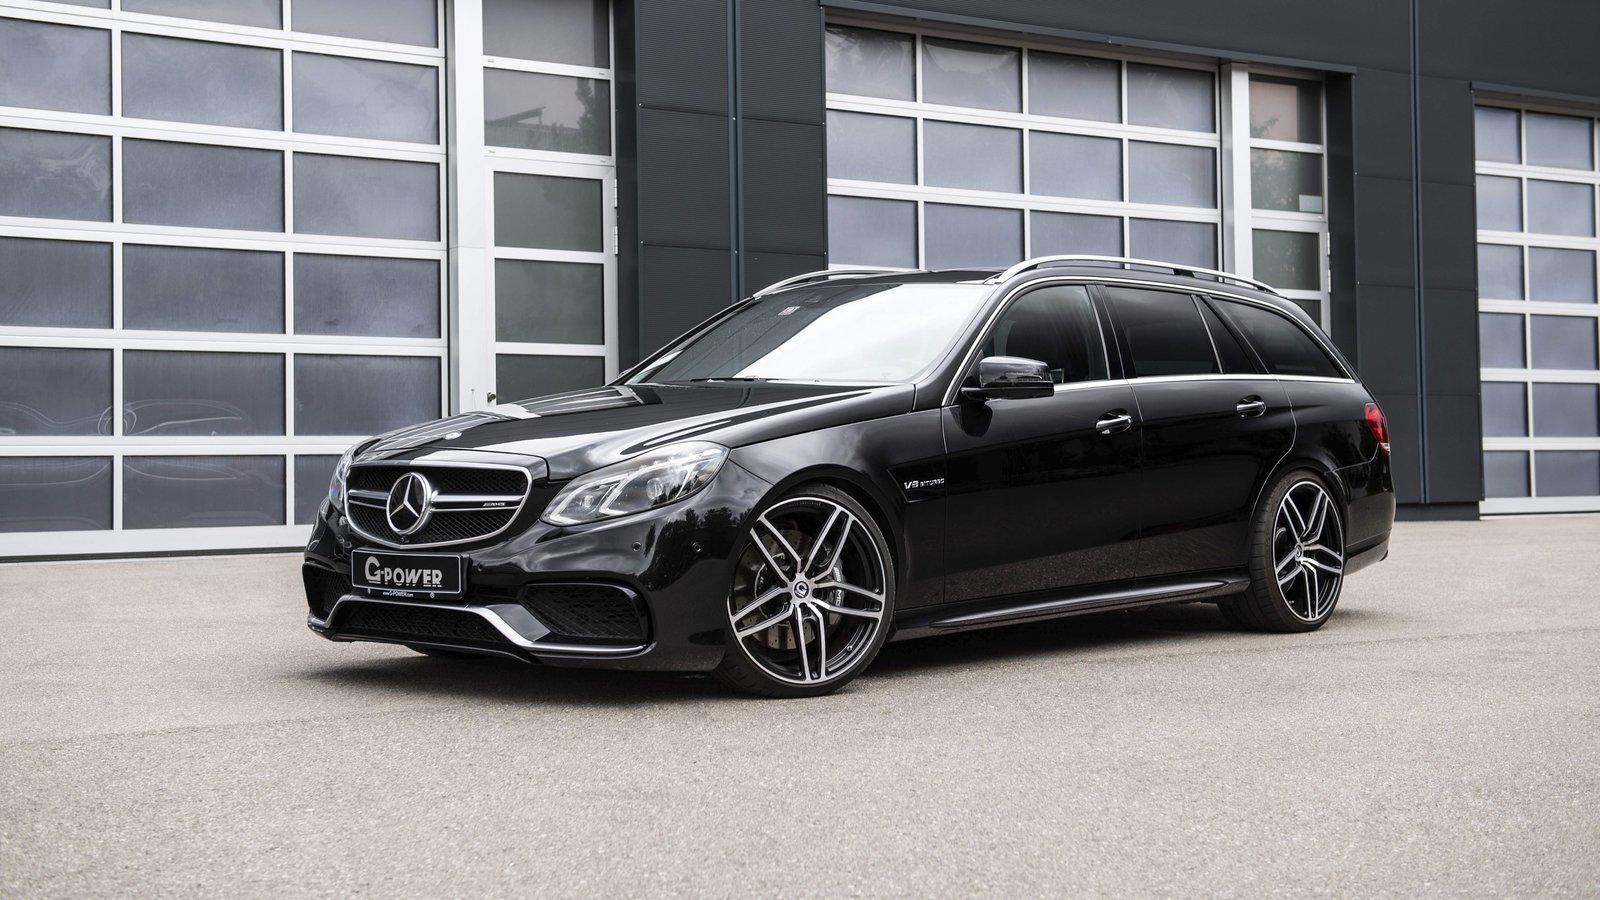 2018 mercedes amg e63 s wagon by g power top speed. Black Bedroom Furniture Sets. Home Design Ideas